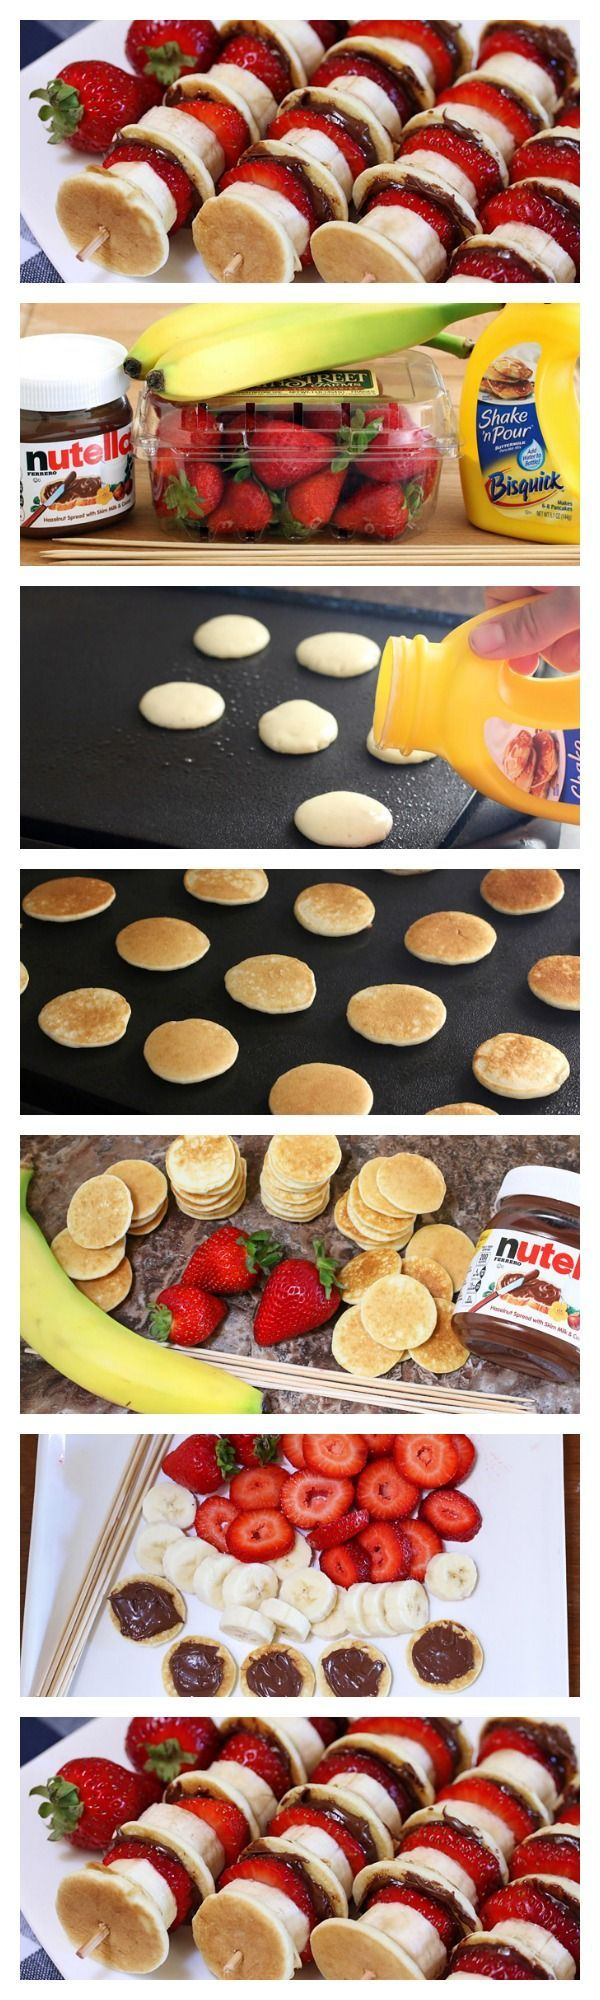 Mini panquecas de Nutella